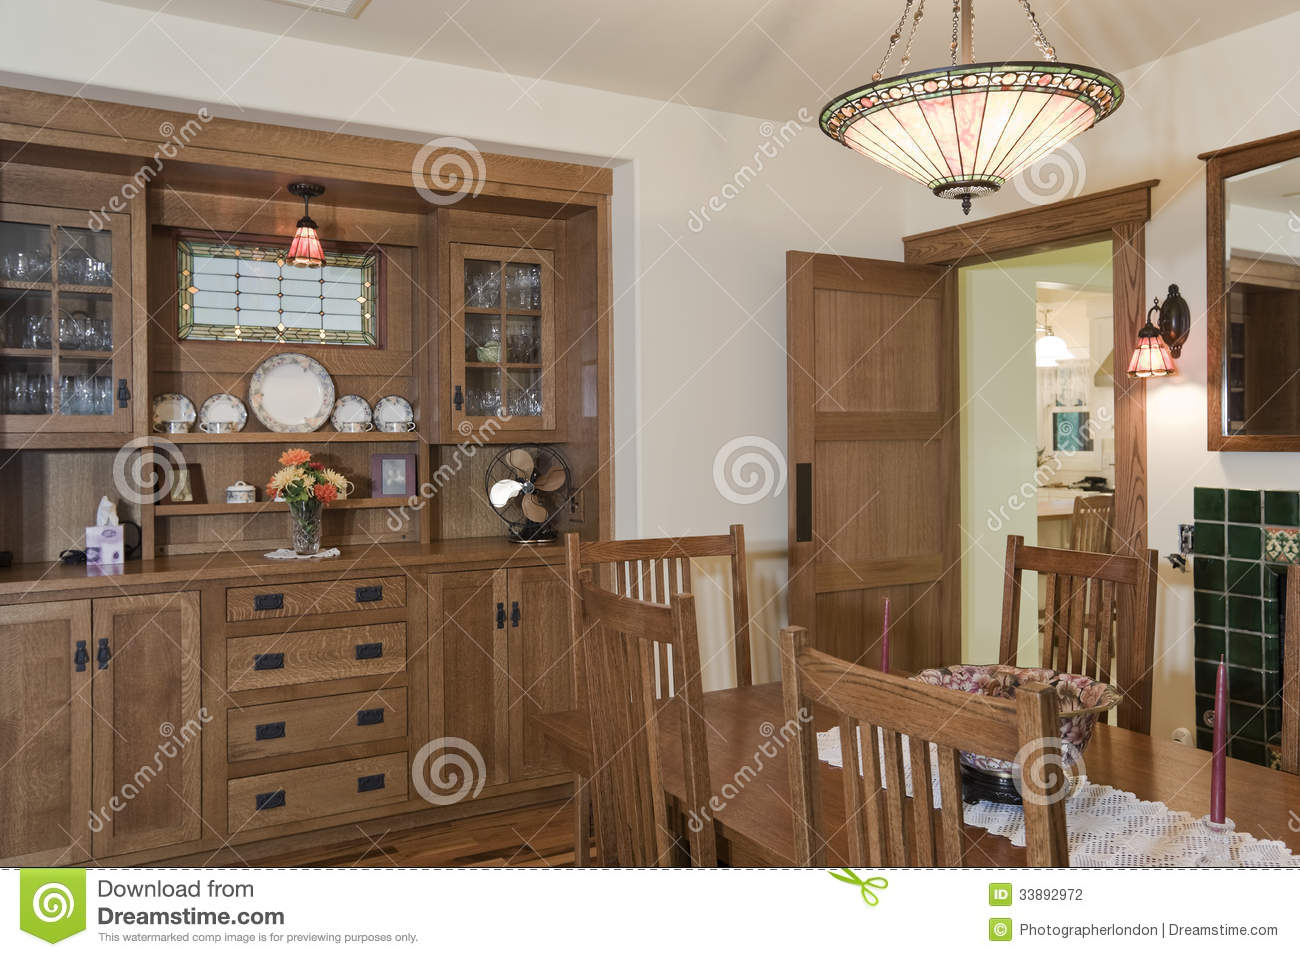 Light Over Dining Table With Wooden Shelf In Background